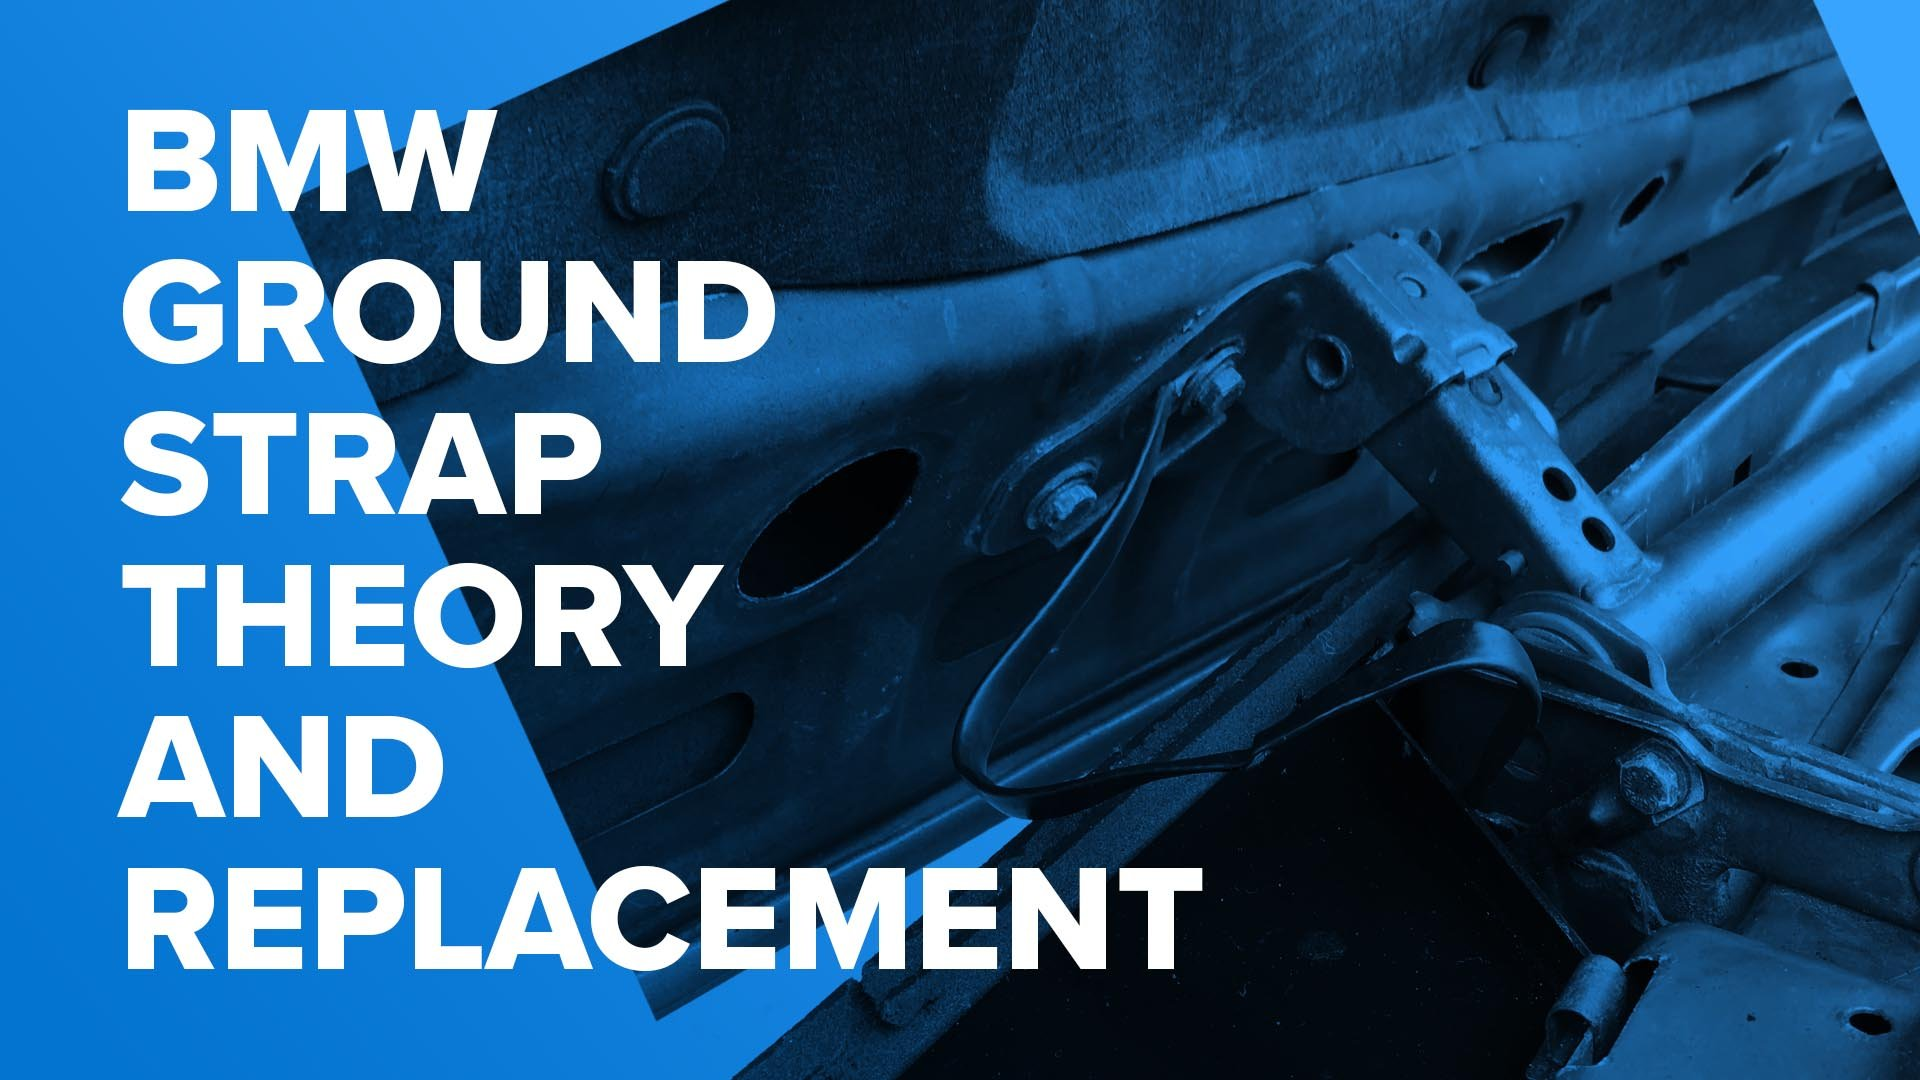 BMW Ground Strap Theory & Replacement